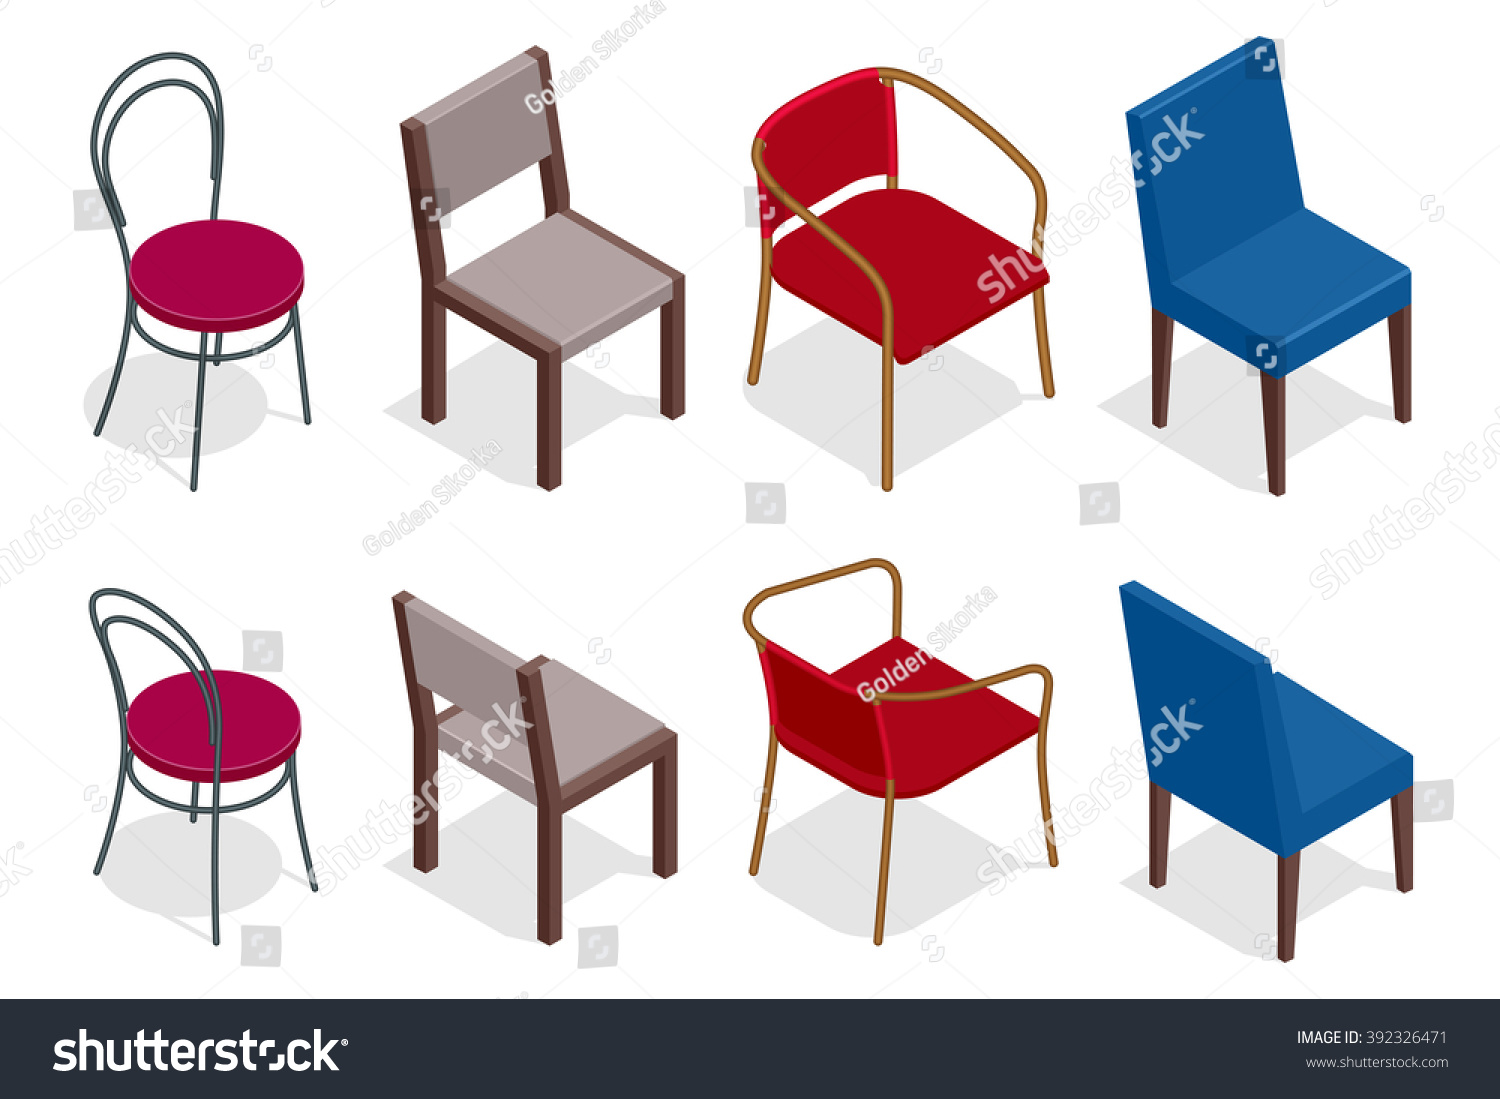 Set chairs flat 3d isometric illustration image for 3d flat design online